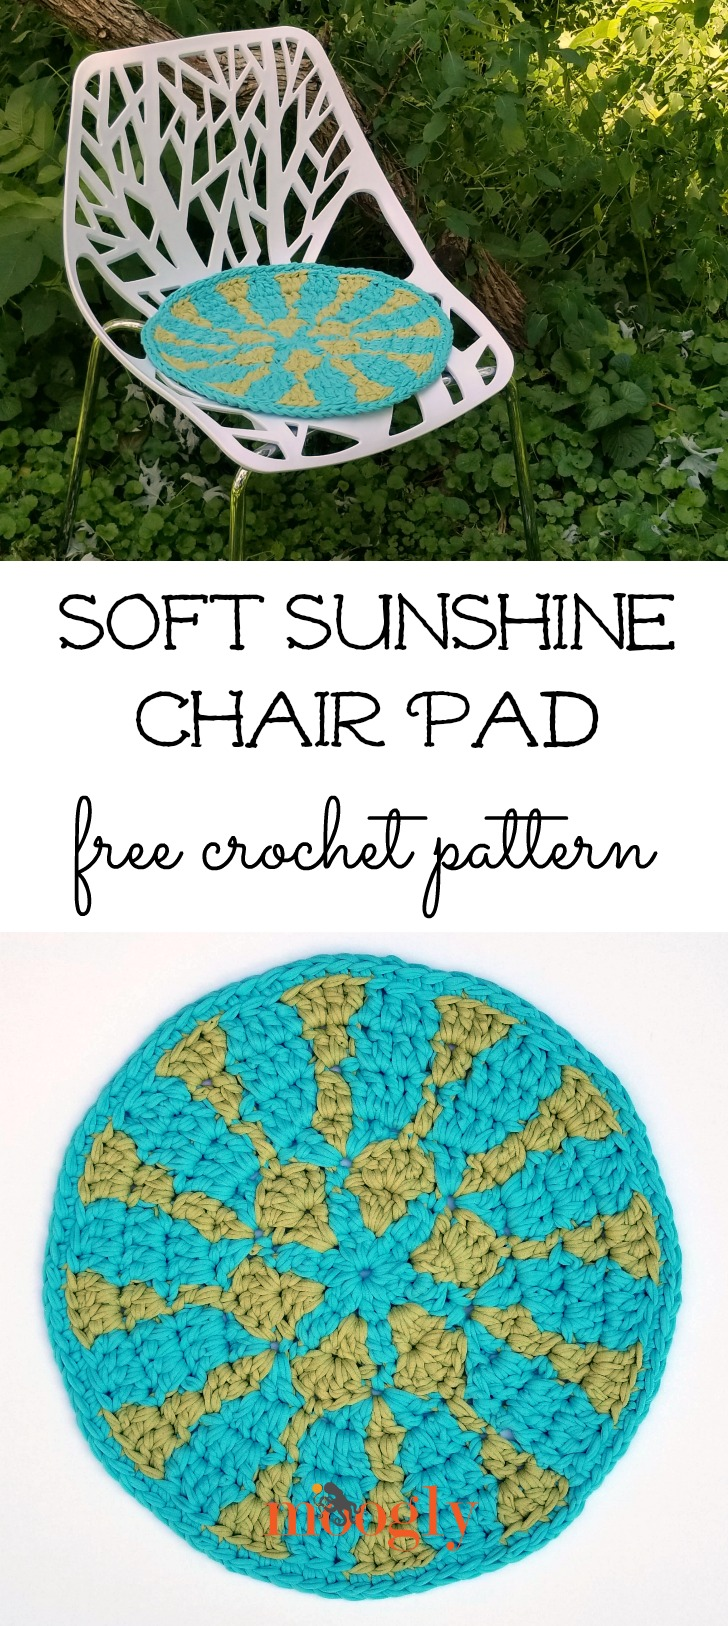 Soft Sunshine Chair Pad - get the free crochet pattern on Moogly